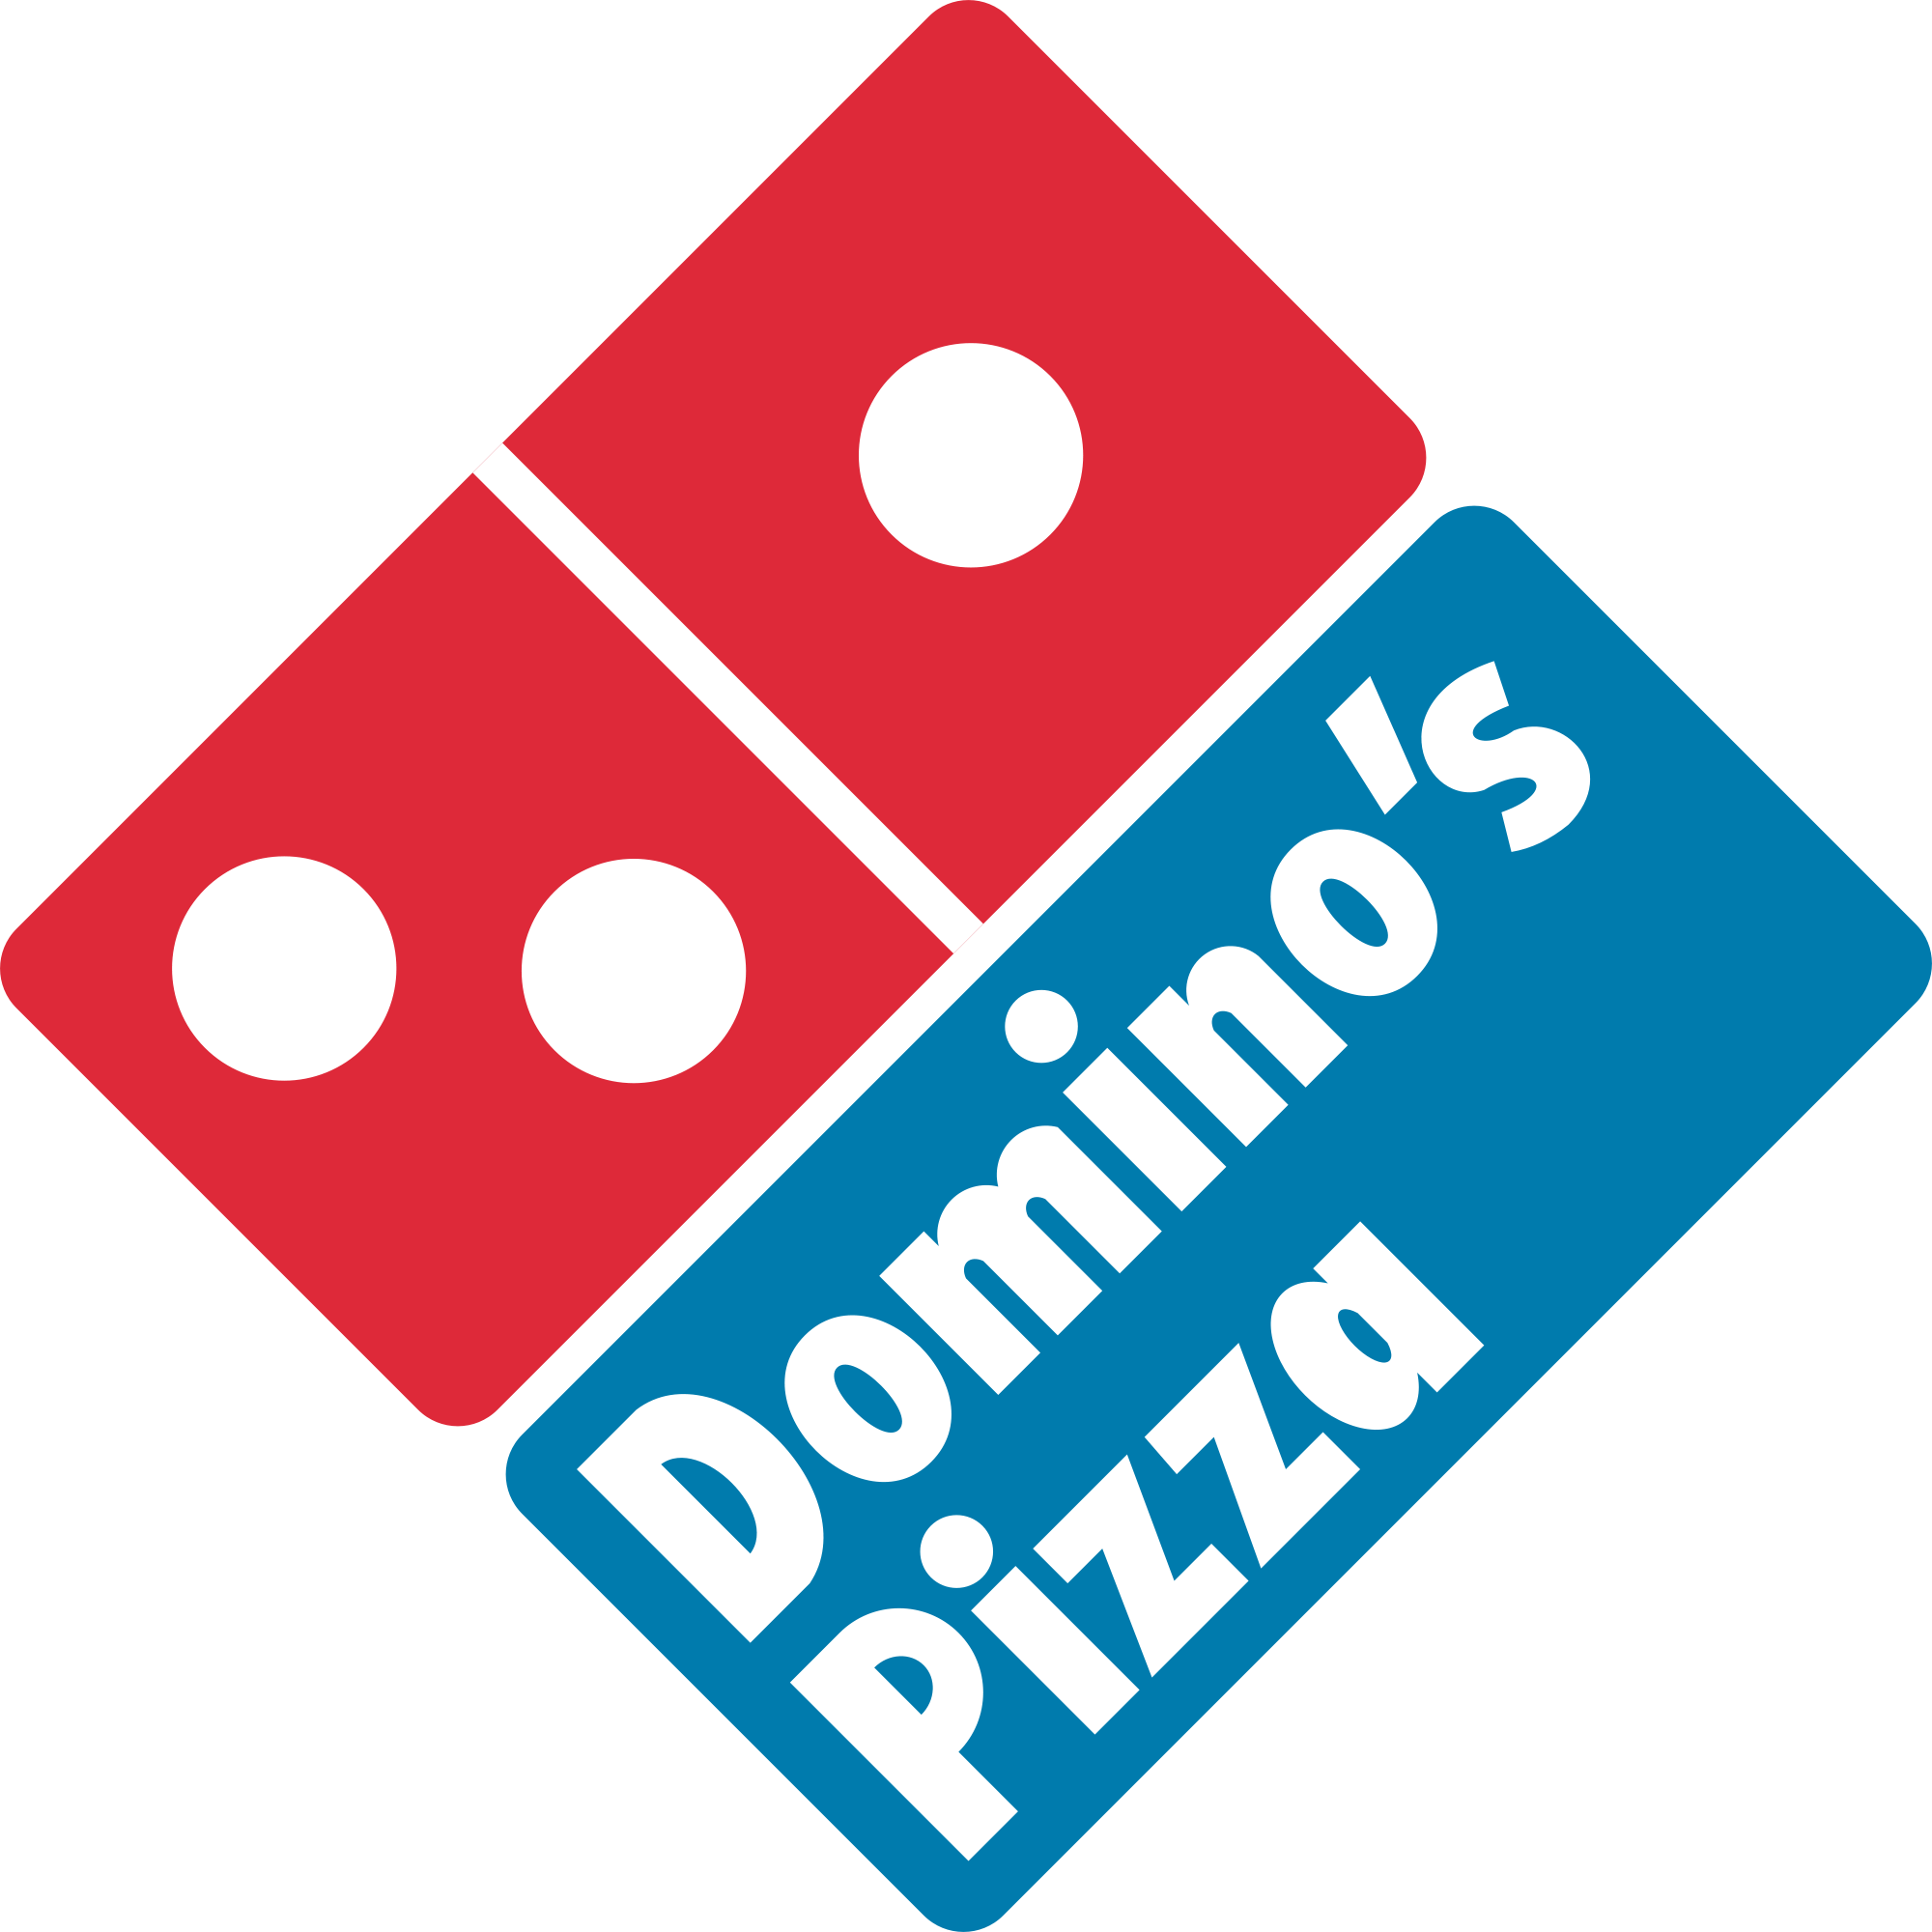 Consulting_Dominos.png